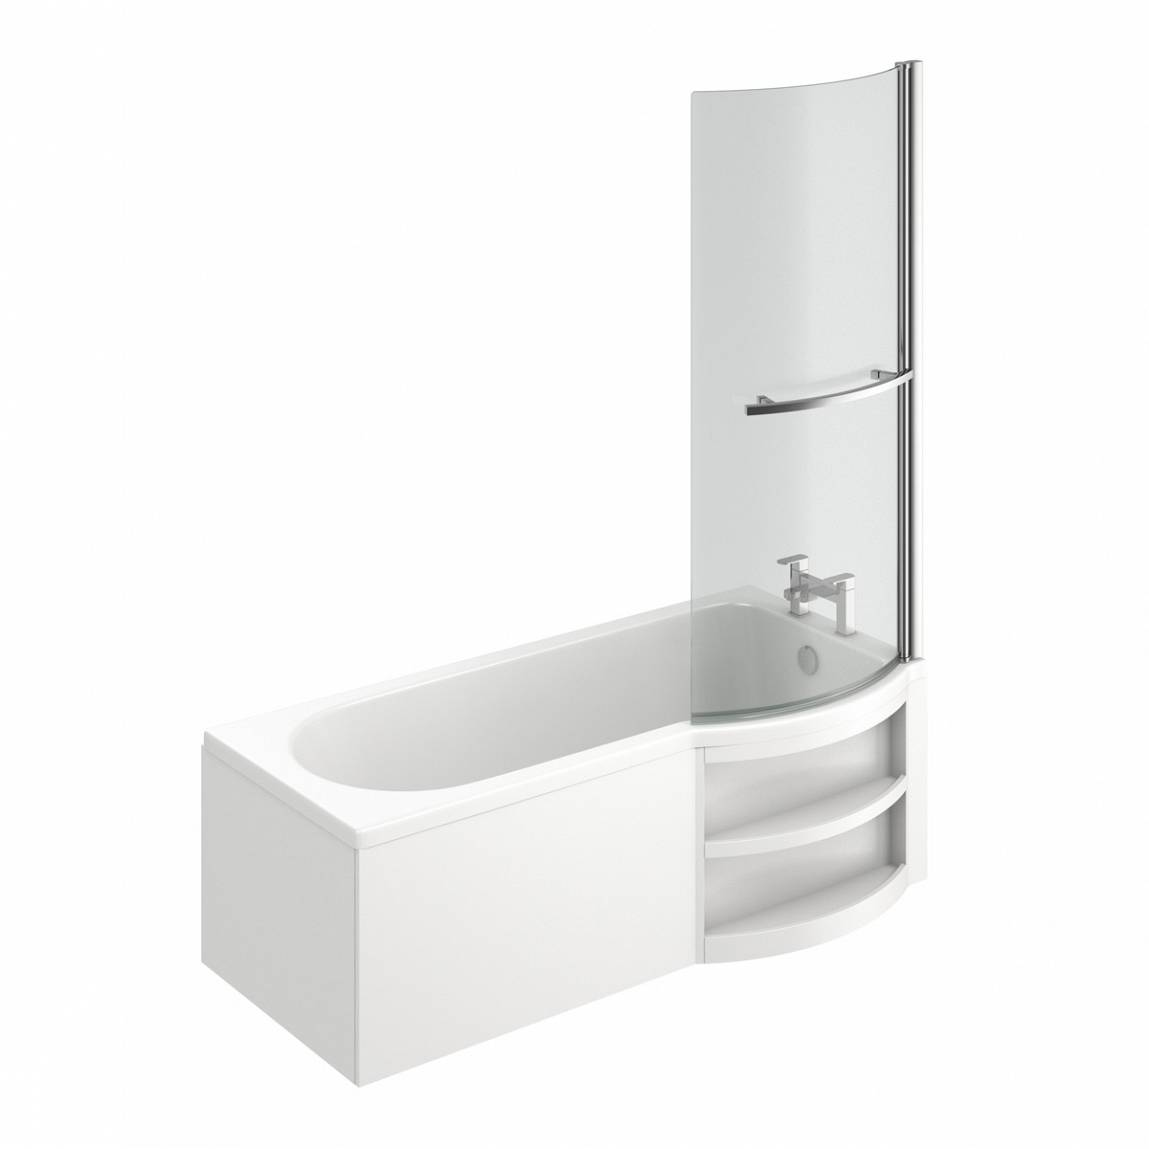 Image of MySpace Water Saving P Shape Shower Bath Right Hand with Storage Panel & 6mm Screen with Towel Rail